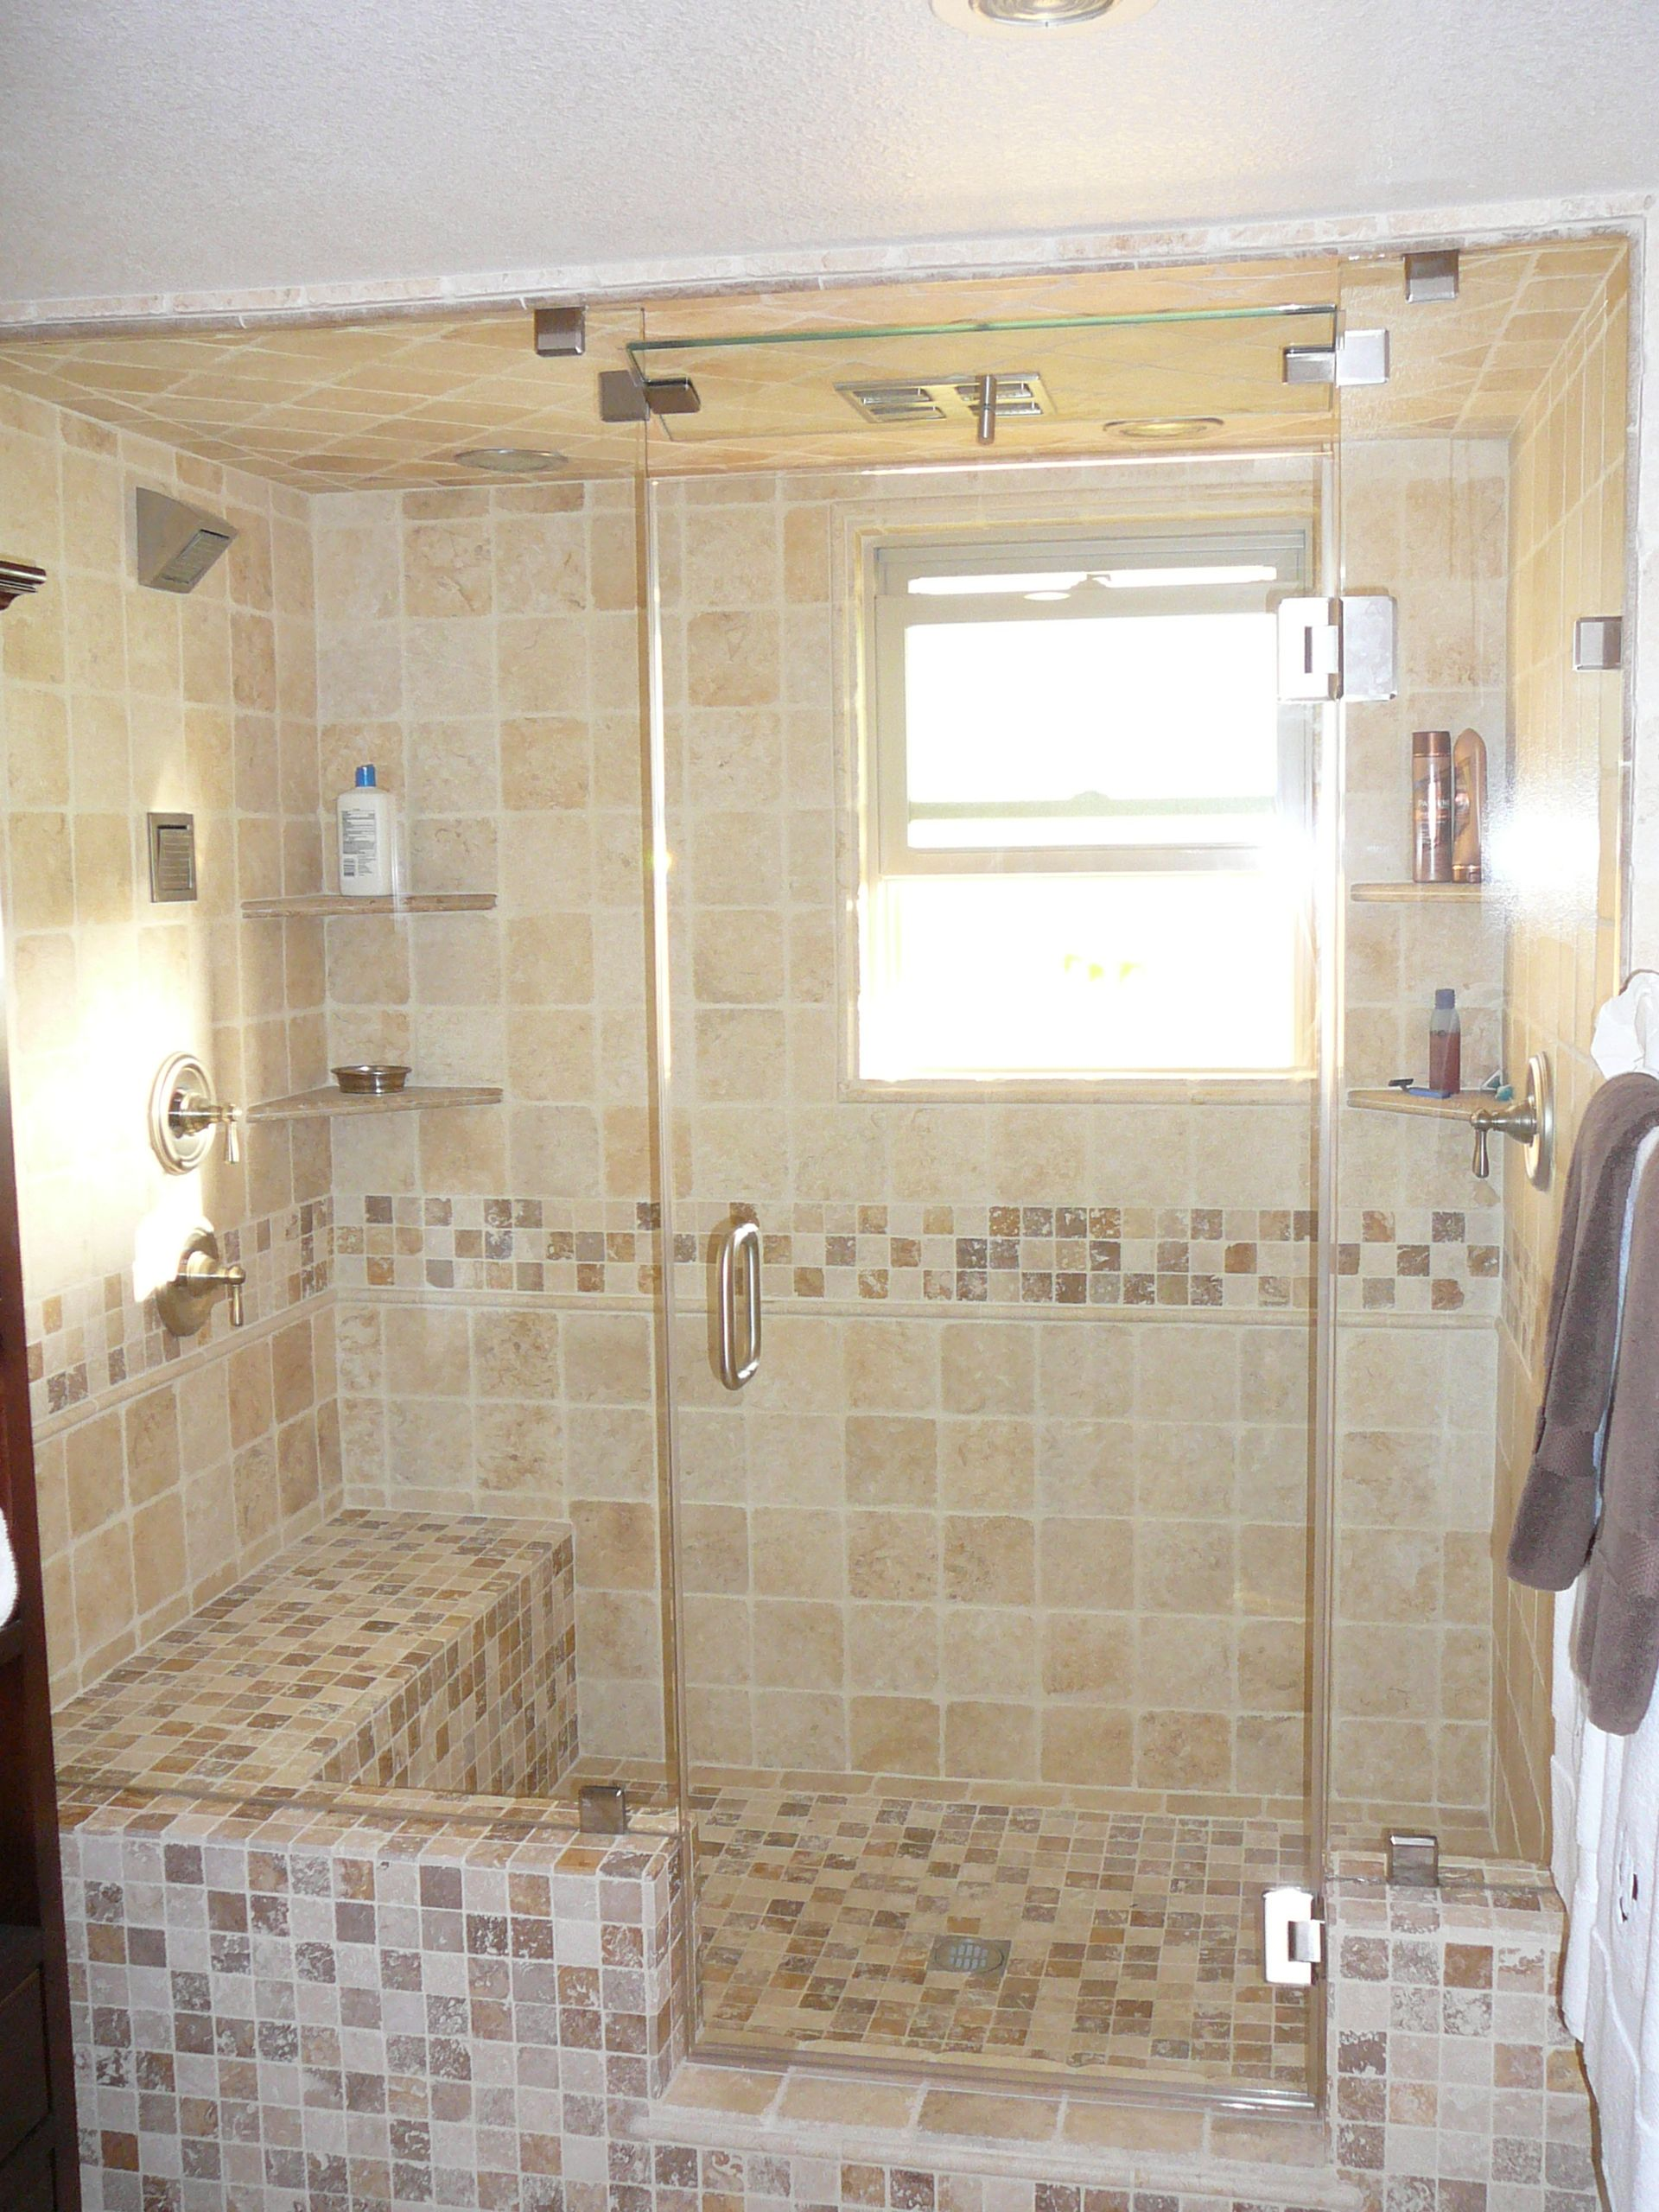 Custom Steam Frameless Shower With Transom Frameless Shower Enclosures Steam Shower Enclosure Bathroom Renos